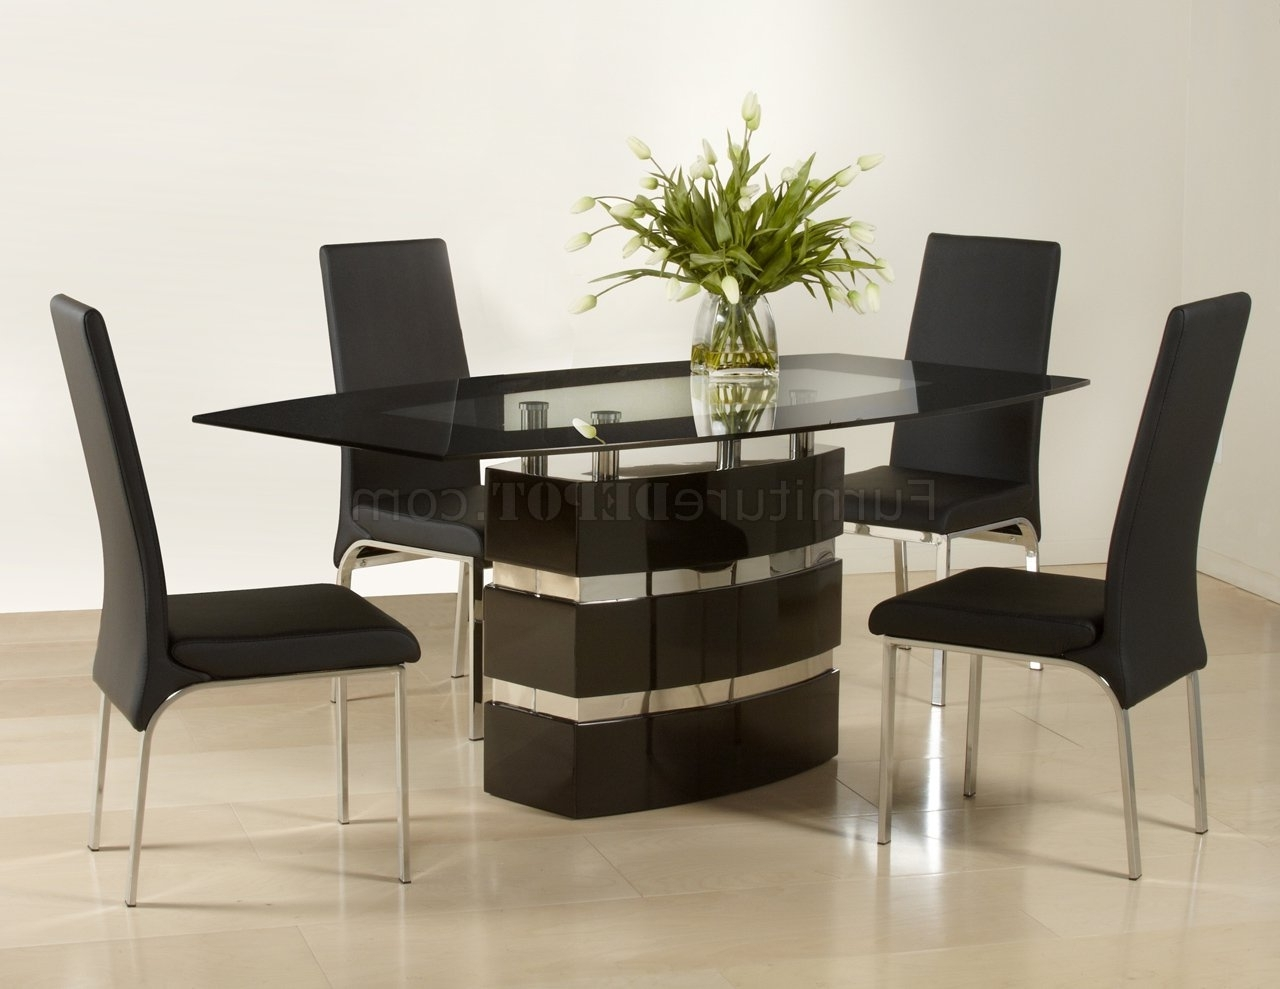 Black High Gloss Finish Modern Dining Table W/optional Chairs Throughout Newest Modern Dining Sets (Gallery 23 of 25)